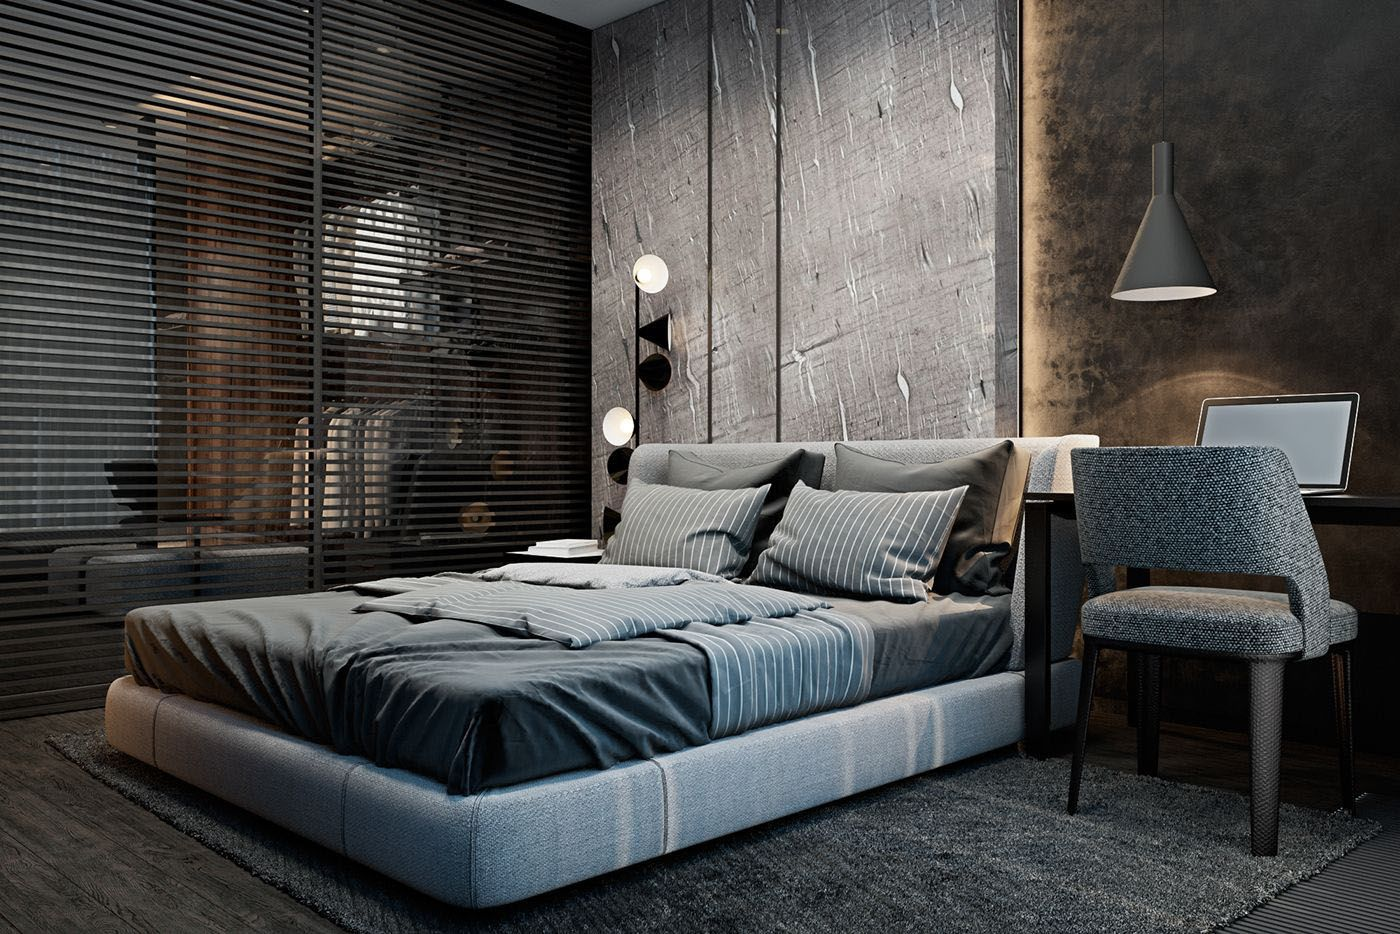 Impressive Small Country Master Bedroom Ideas Tips For 2019 Bedroom Design Diy Small Master Bedroom Master Bedroom Design